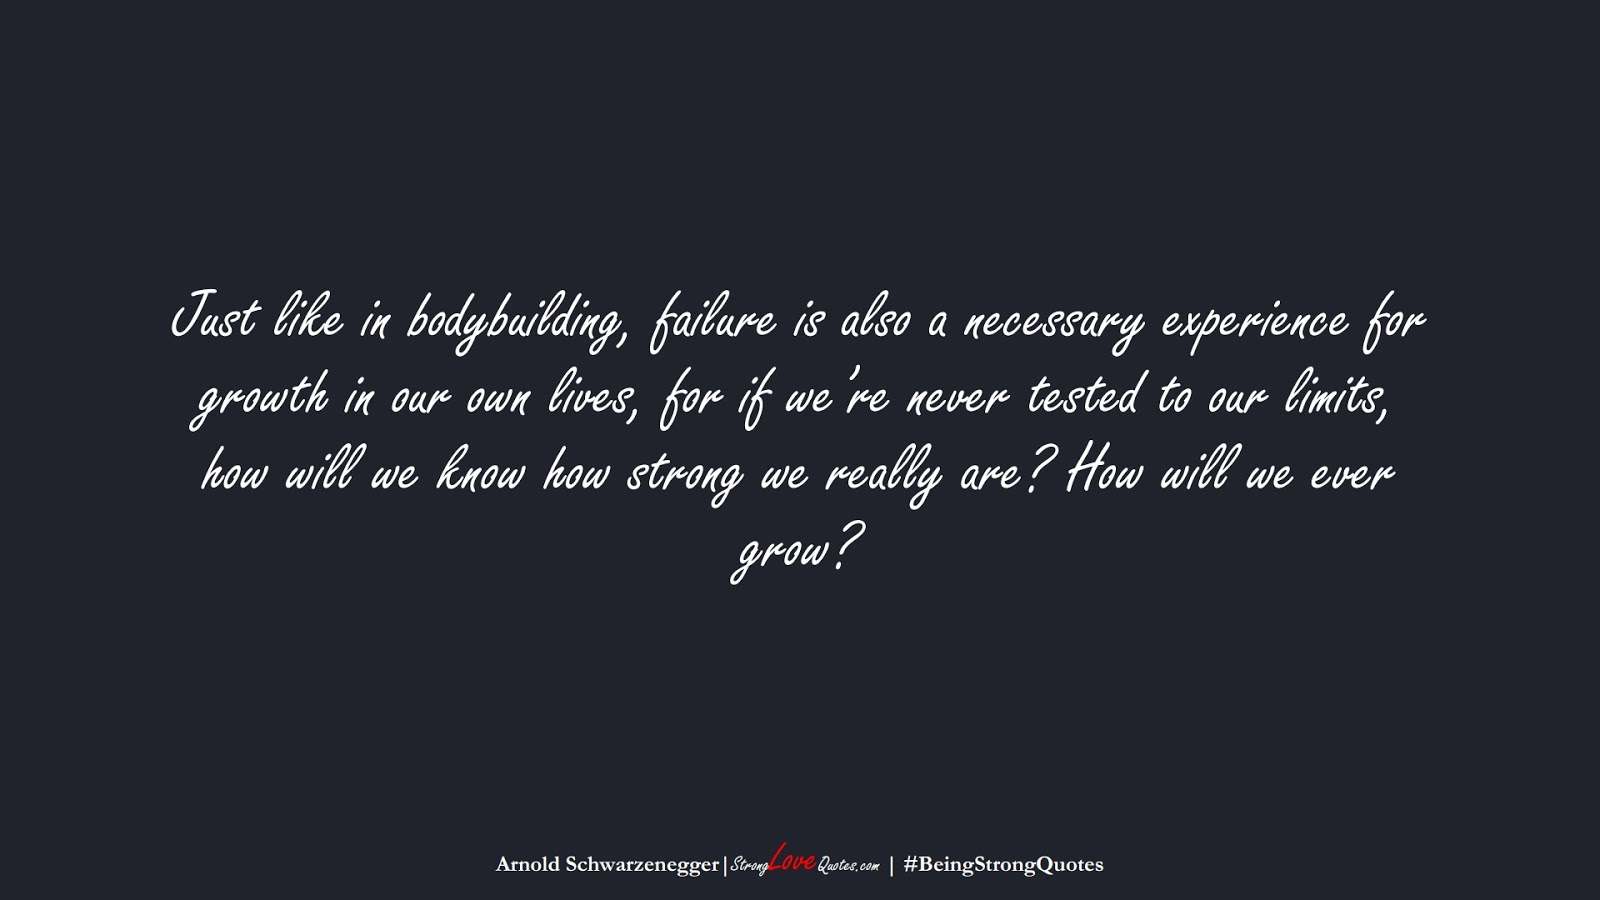 Just like in bodybuilding, failure is also a necessary experience for growth in our own lives, for if we're never tested to our limits, how will we know how strong we really are? How will we ever grow? (Arnold Schwarzenegger);  #BeingStrongQuotes